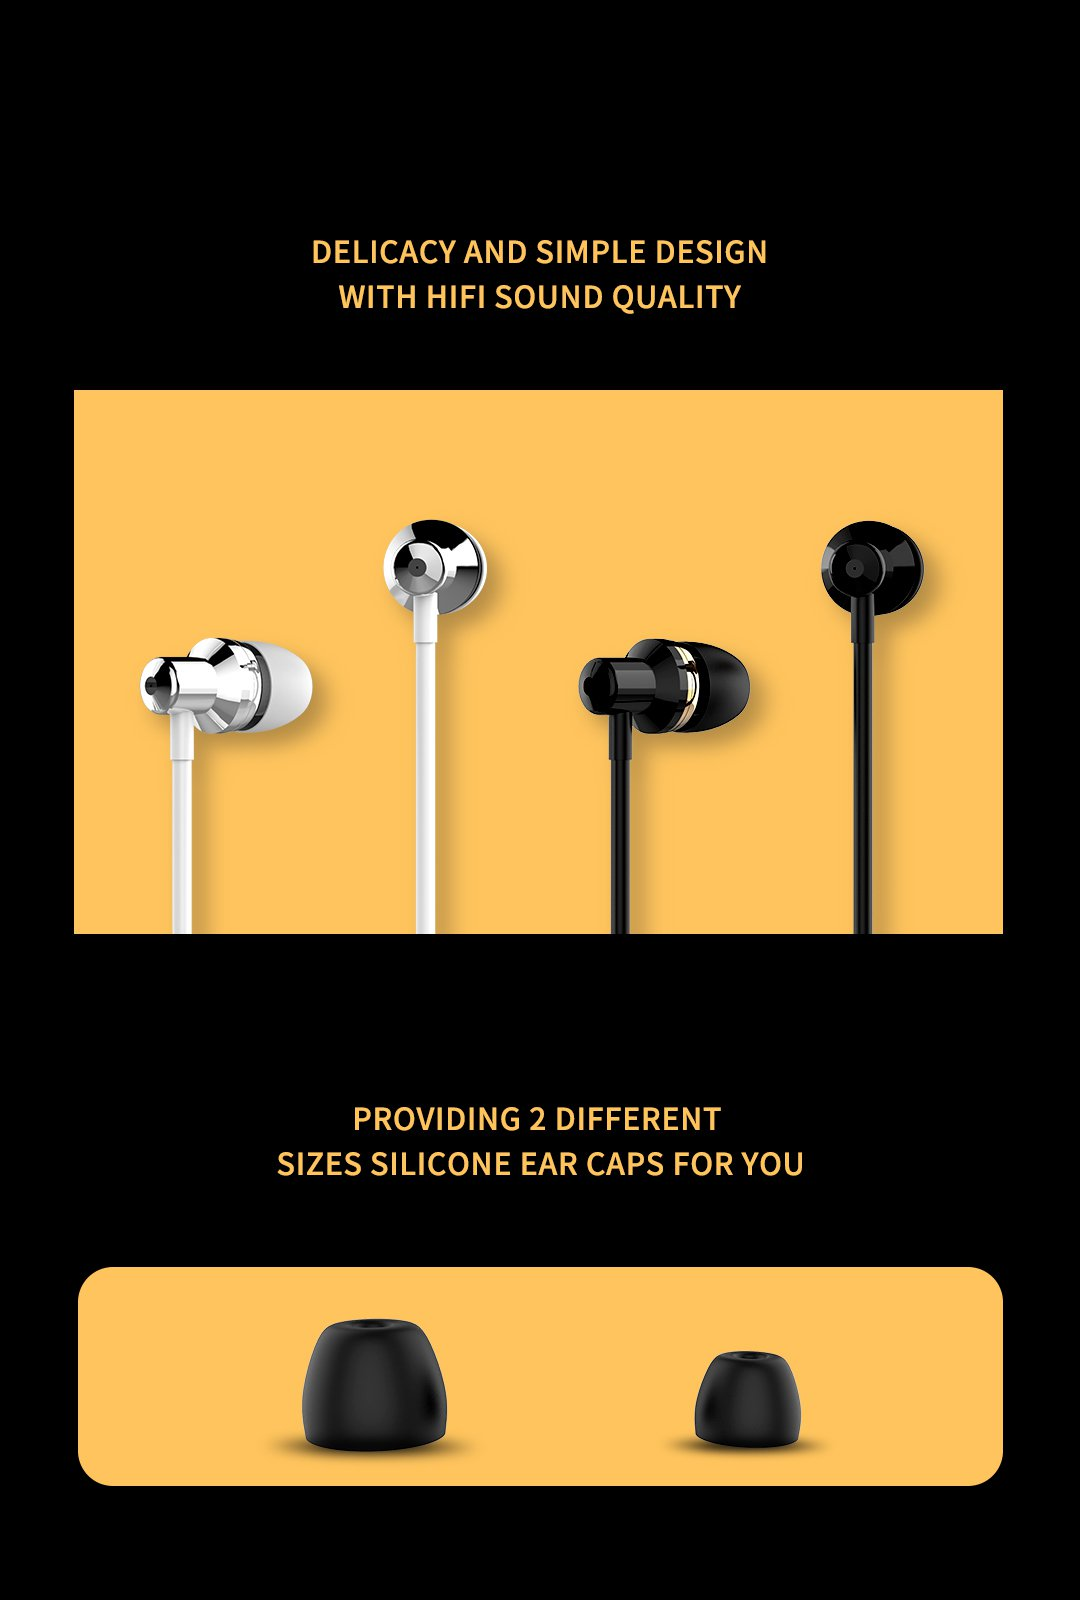 Wi90 Wired Noise Cancelling Fashion In-Ear Earphone With Mic For iPhone Xiaomi Mobile phone PS4